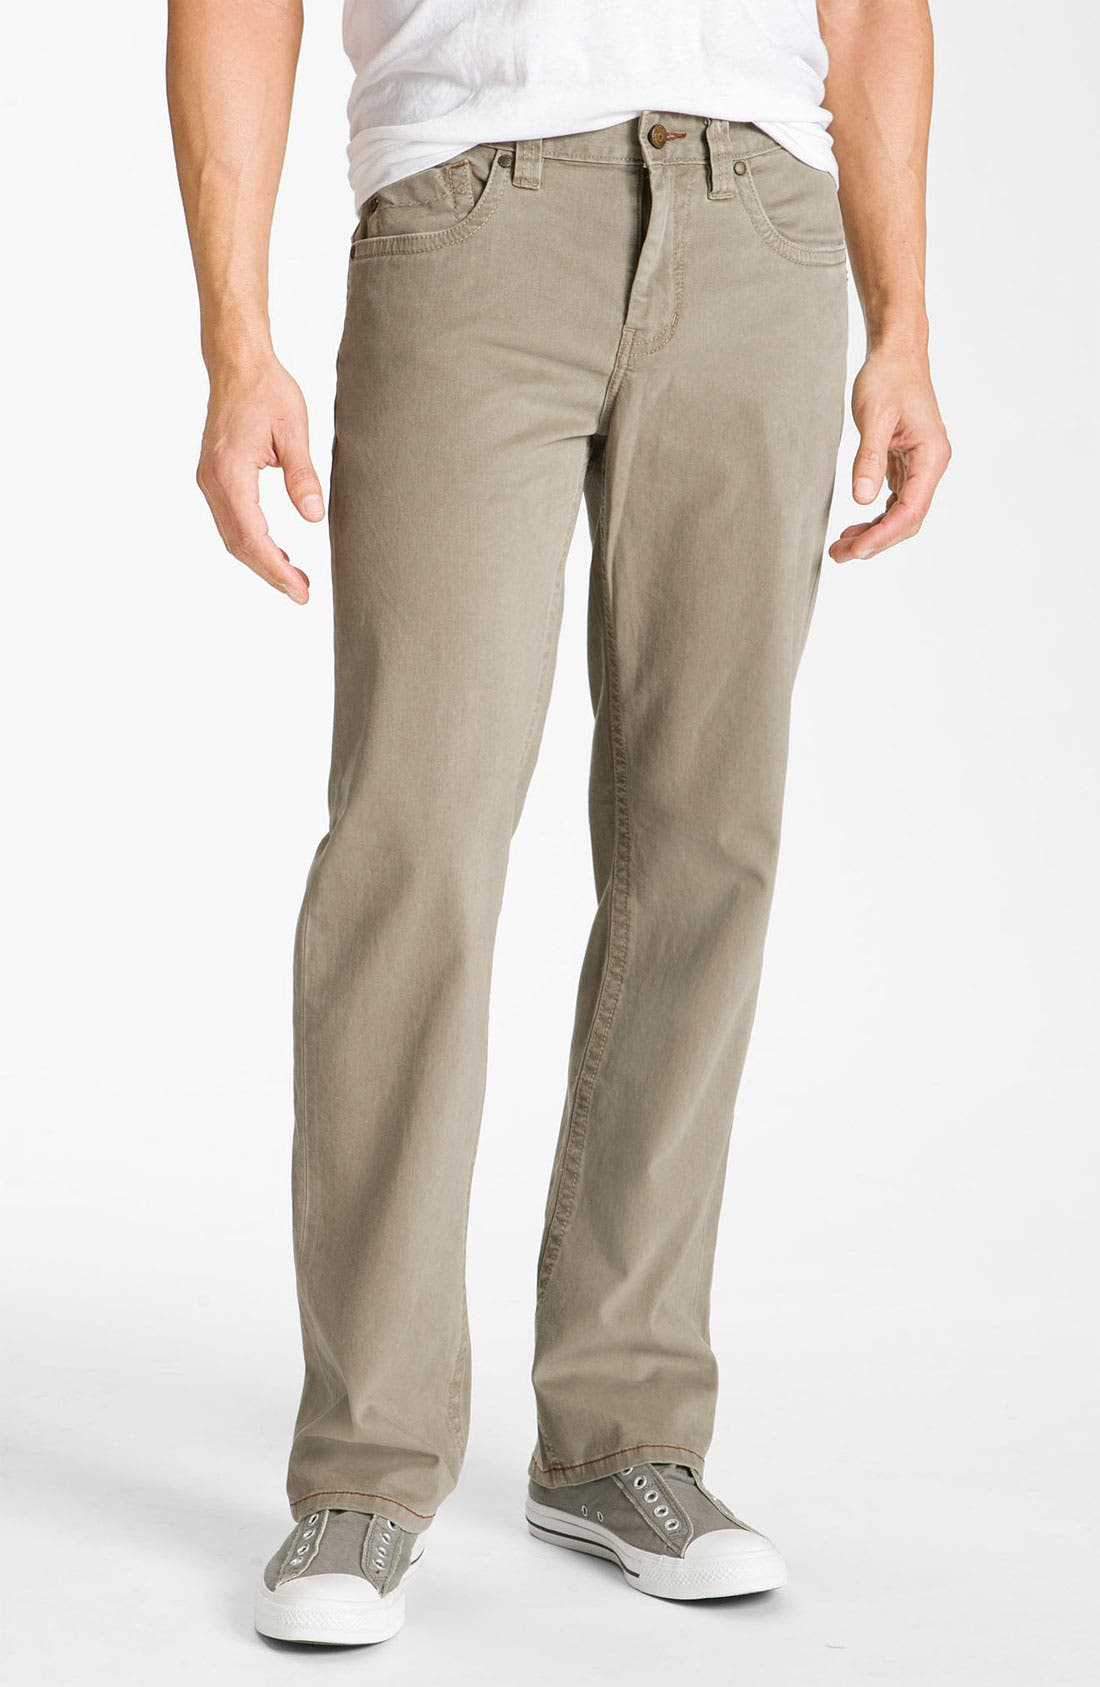 Alternate Image 1 Selected - Tommy Bahama Denim 'Twill Smith' Standard Fit Pants (Big & Tall)